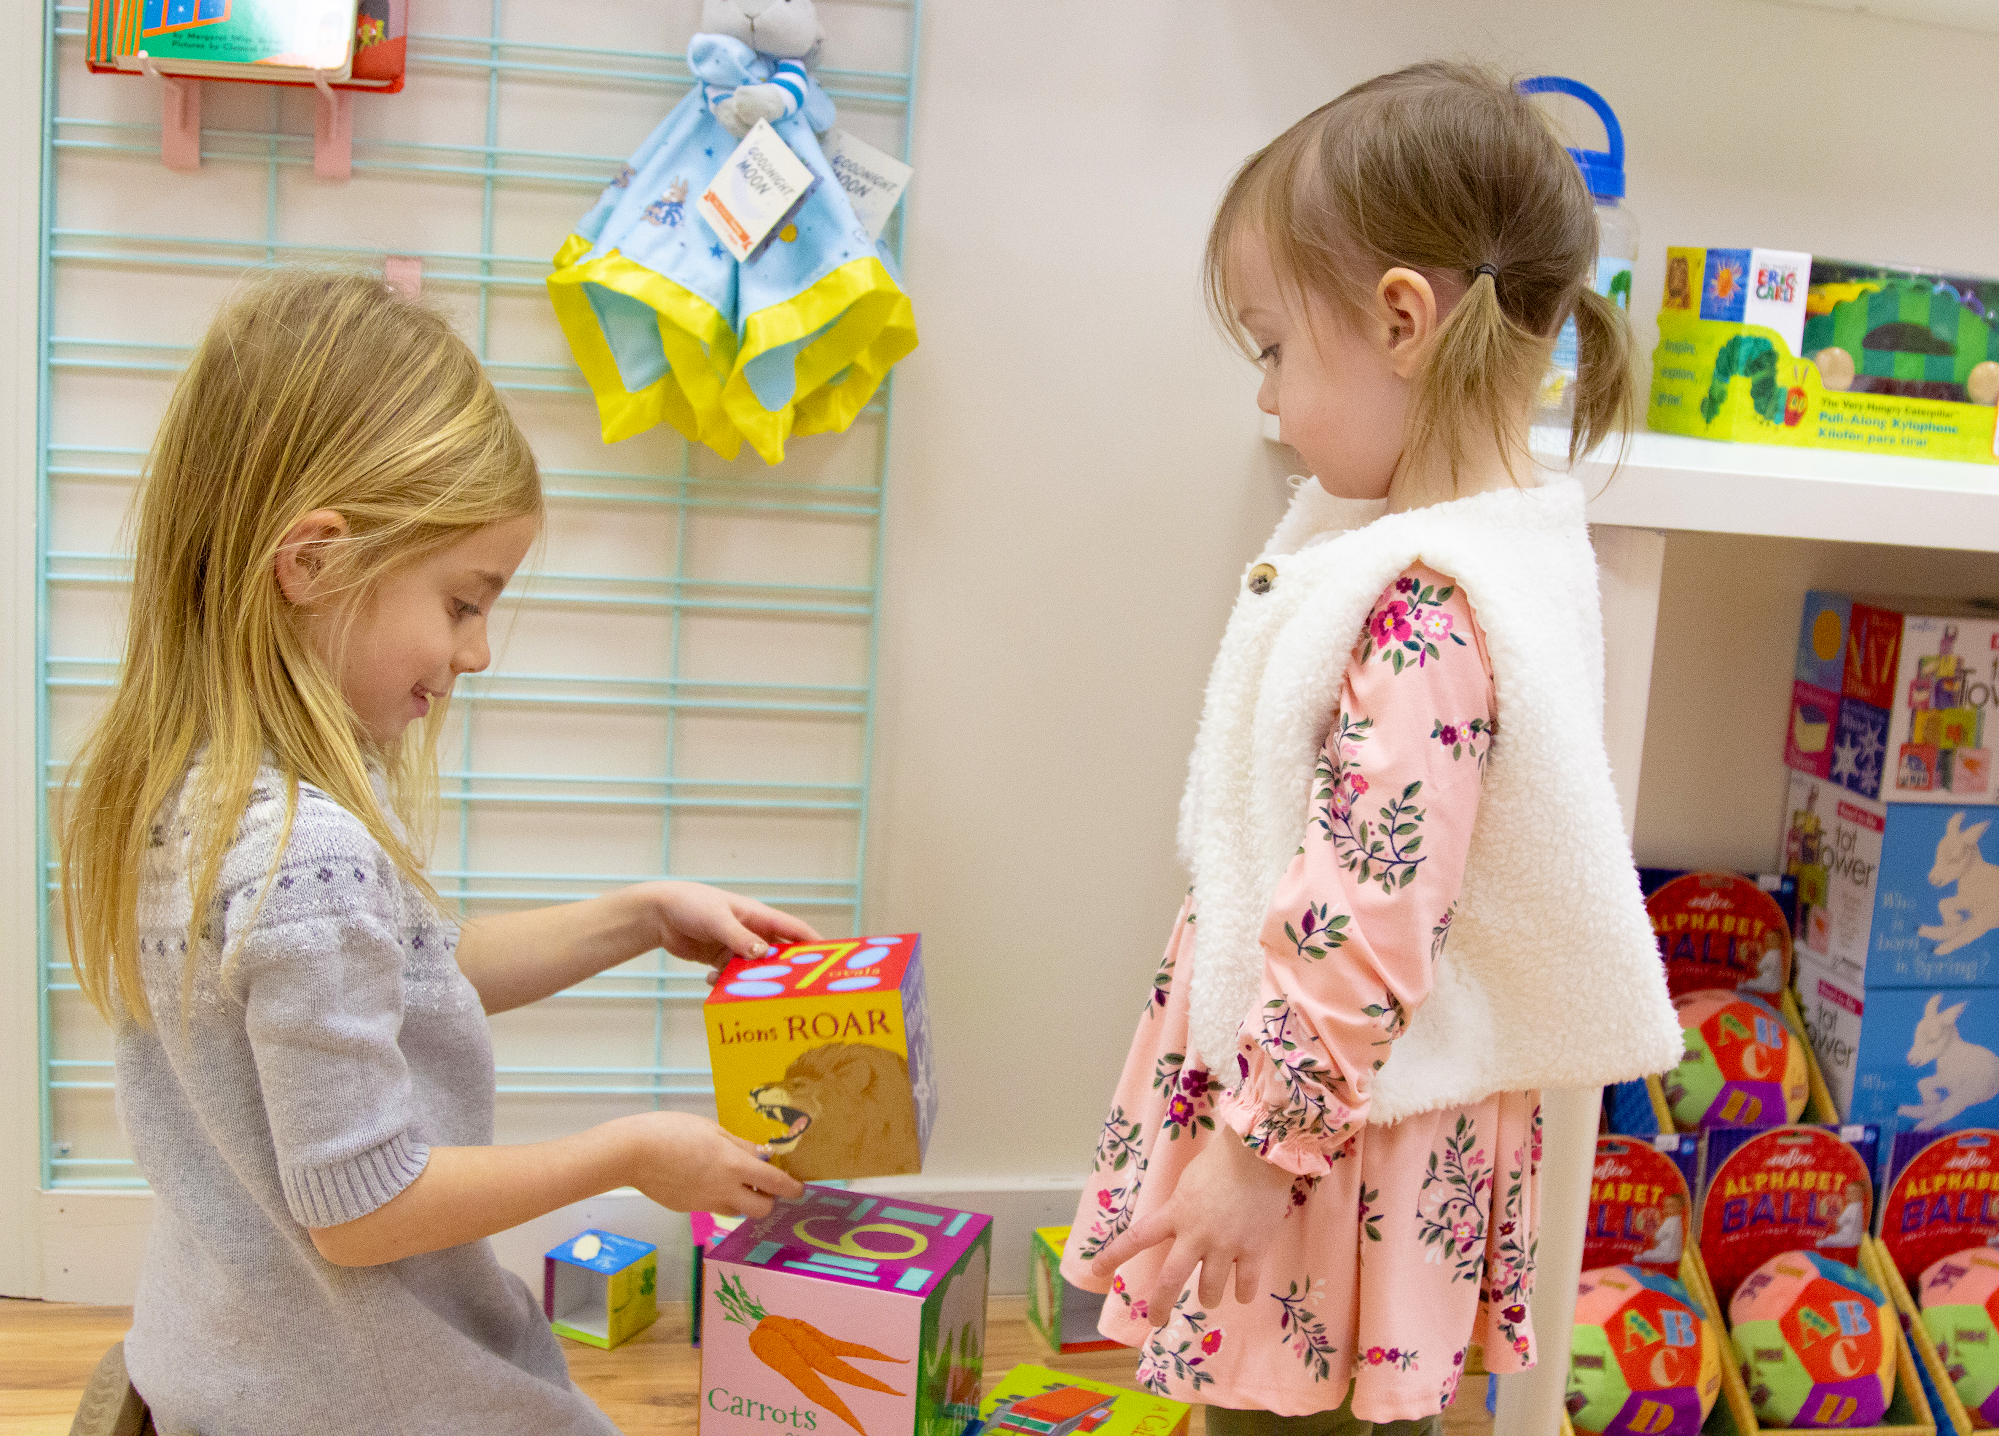 We love seeing the kids play in our store.